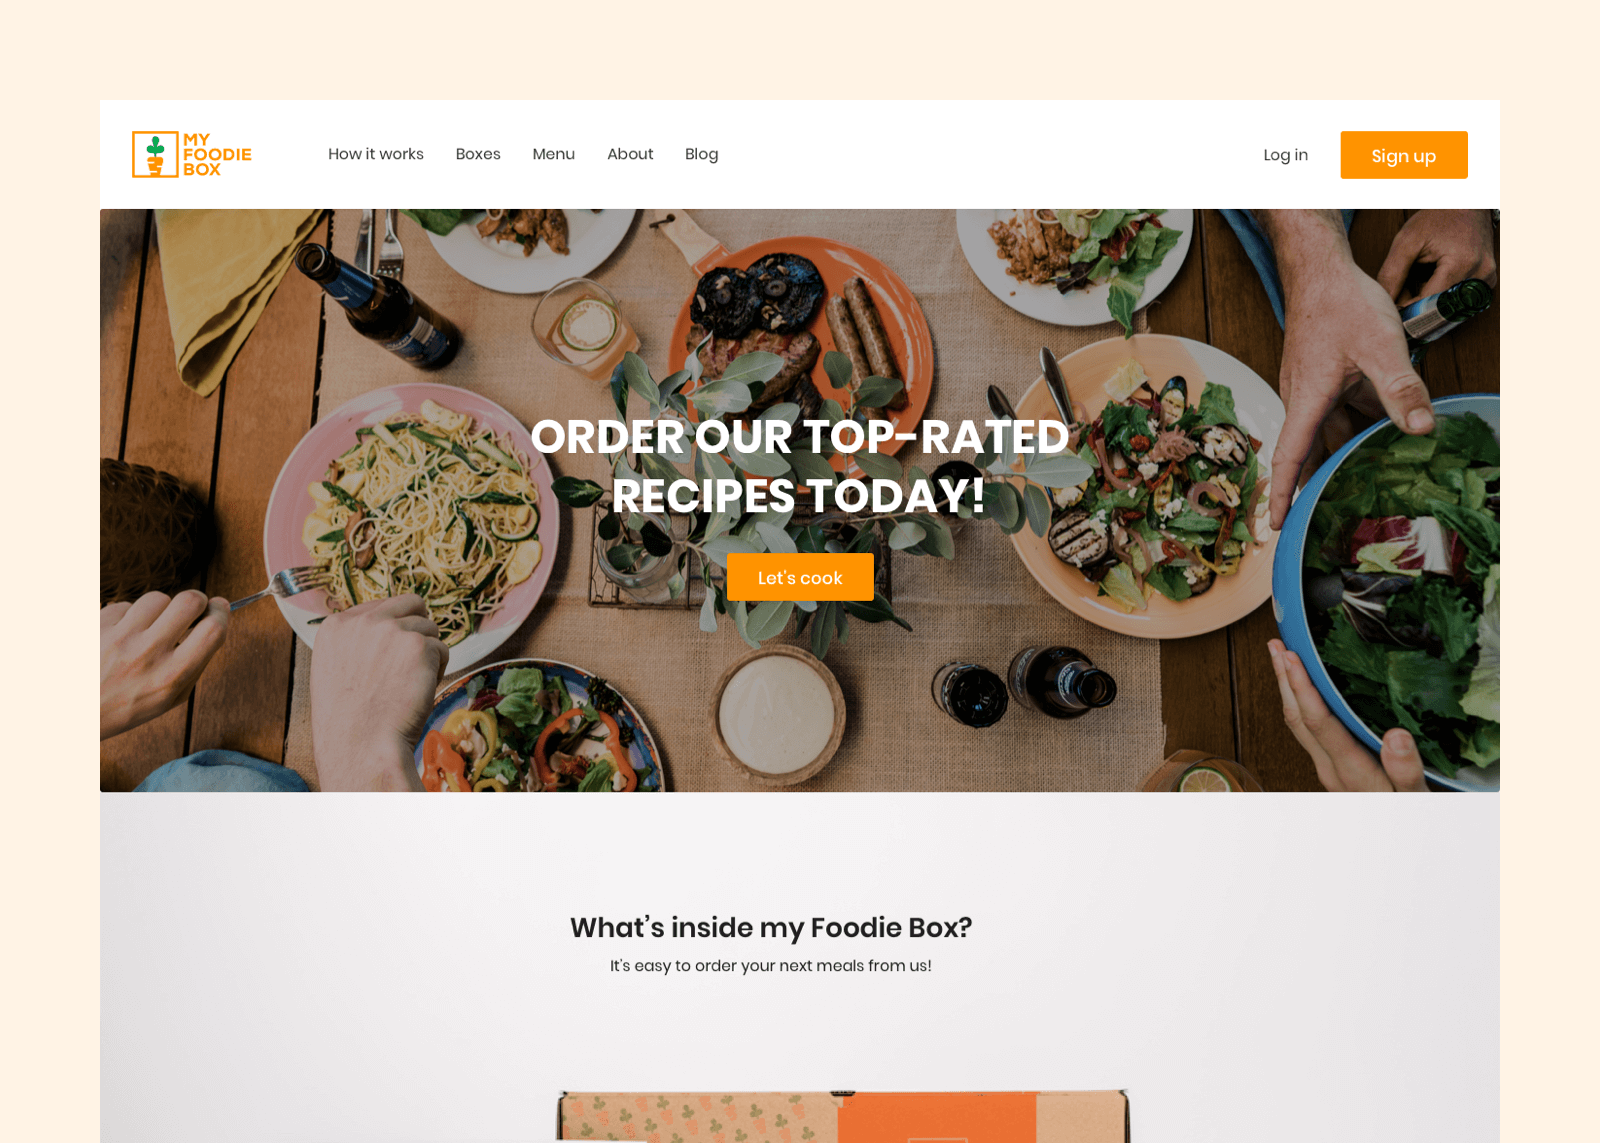 My Foodie Box, a meal subscription service based in Perth